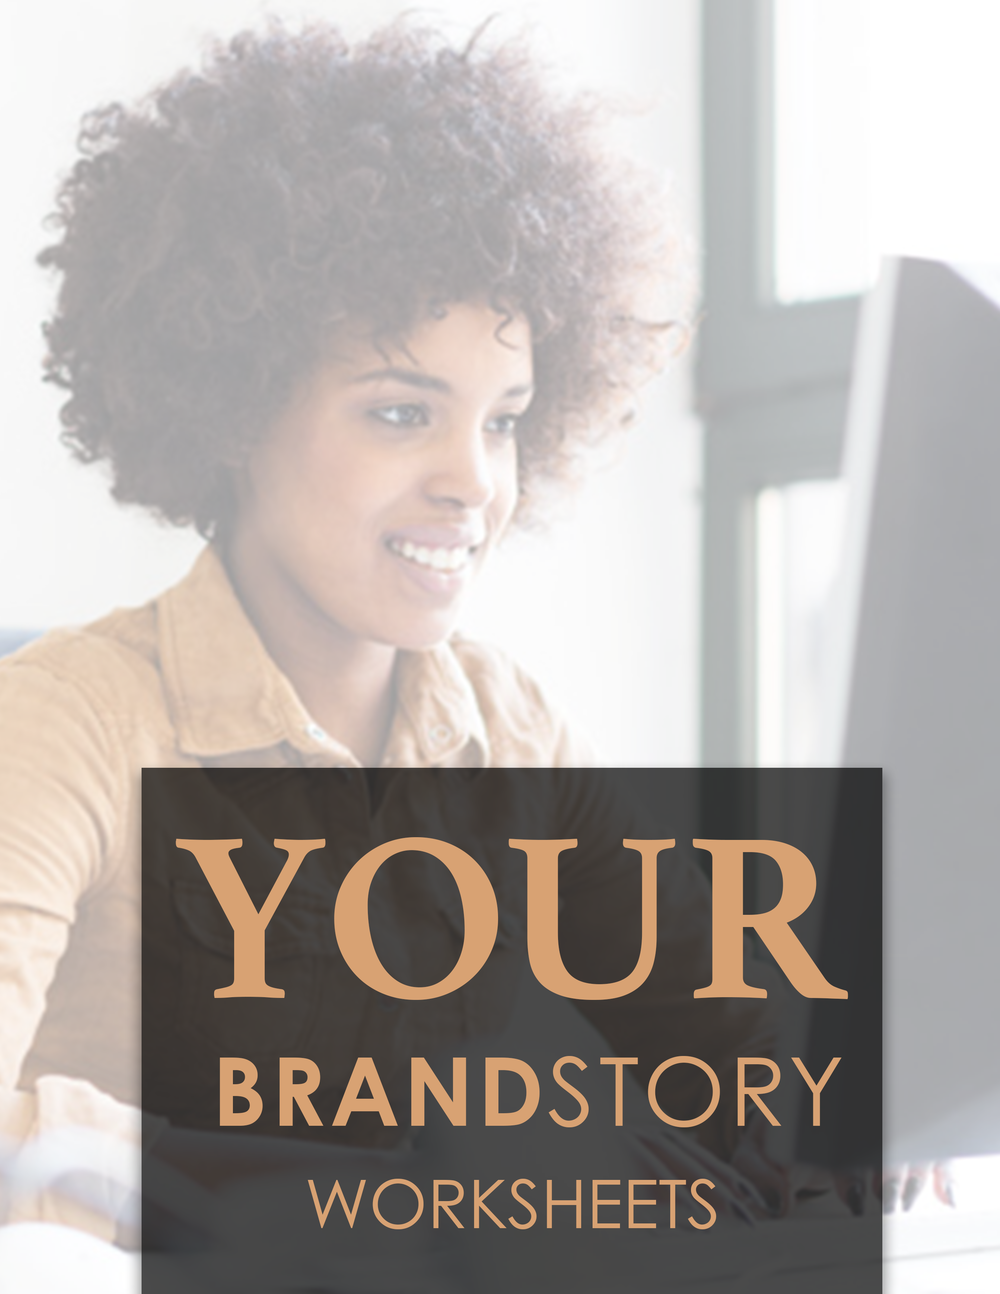 Your brand story cover.png